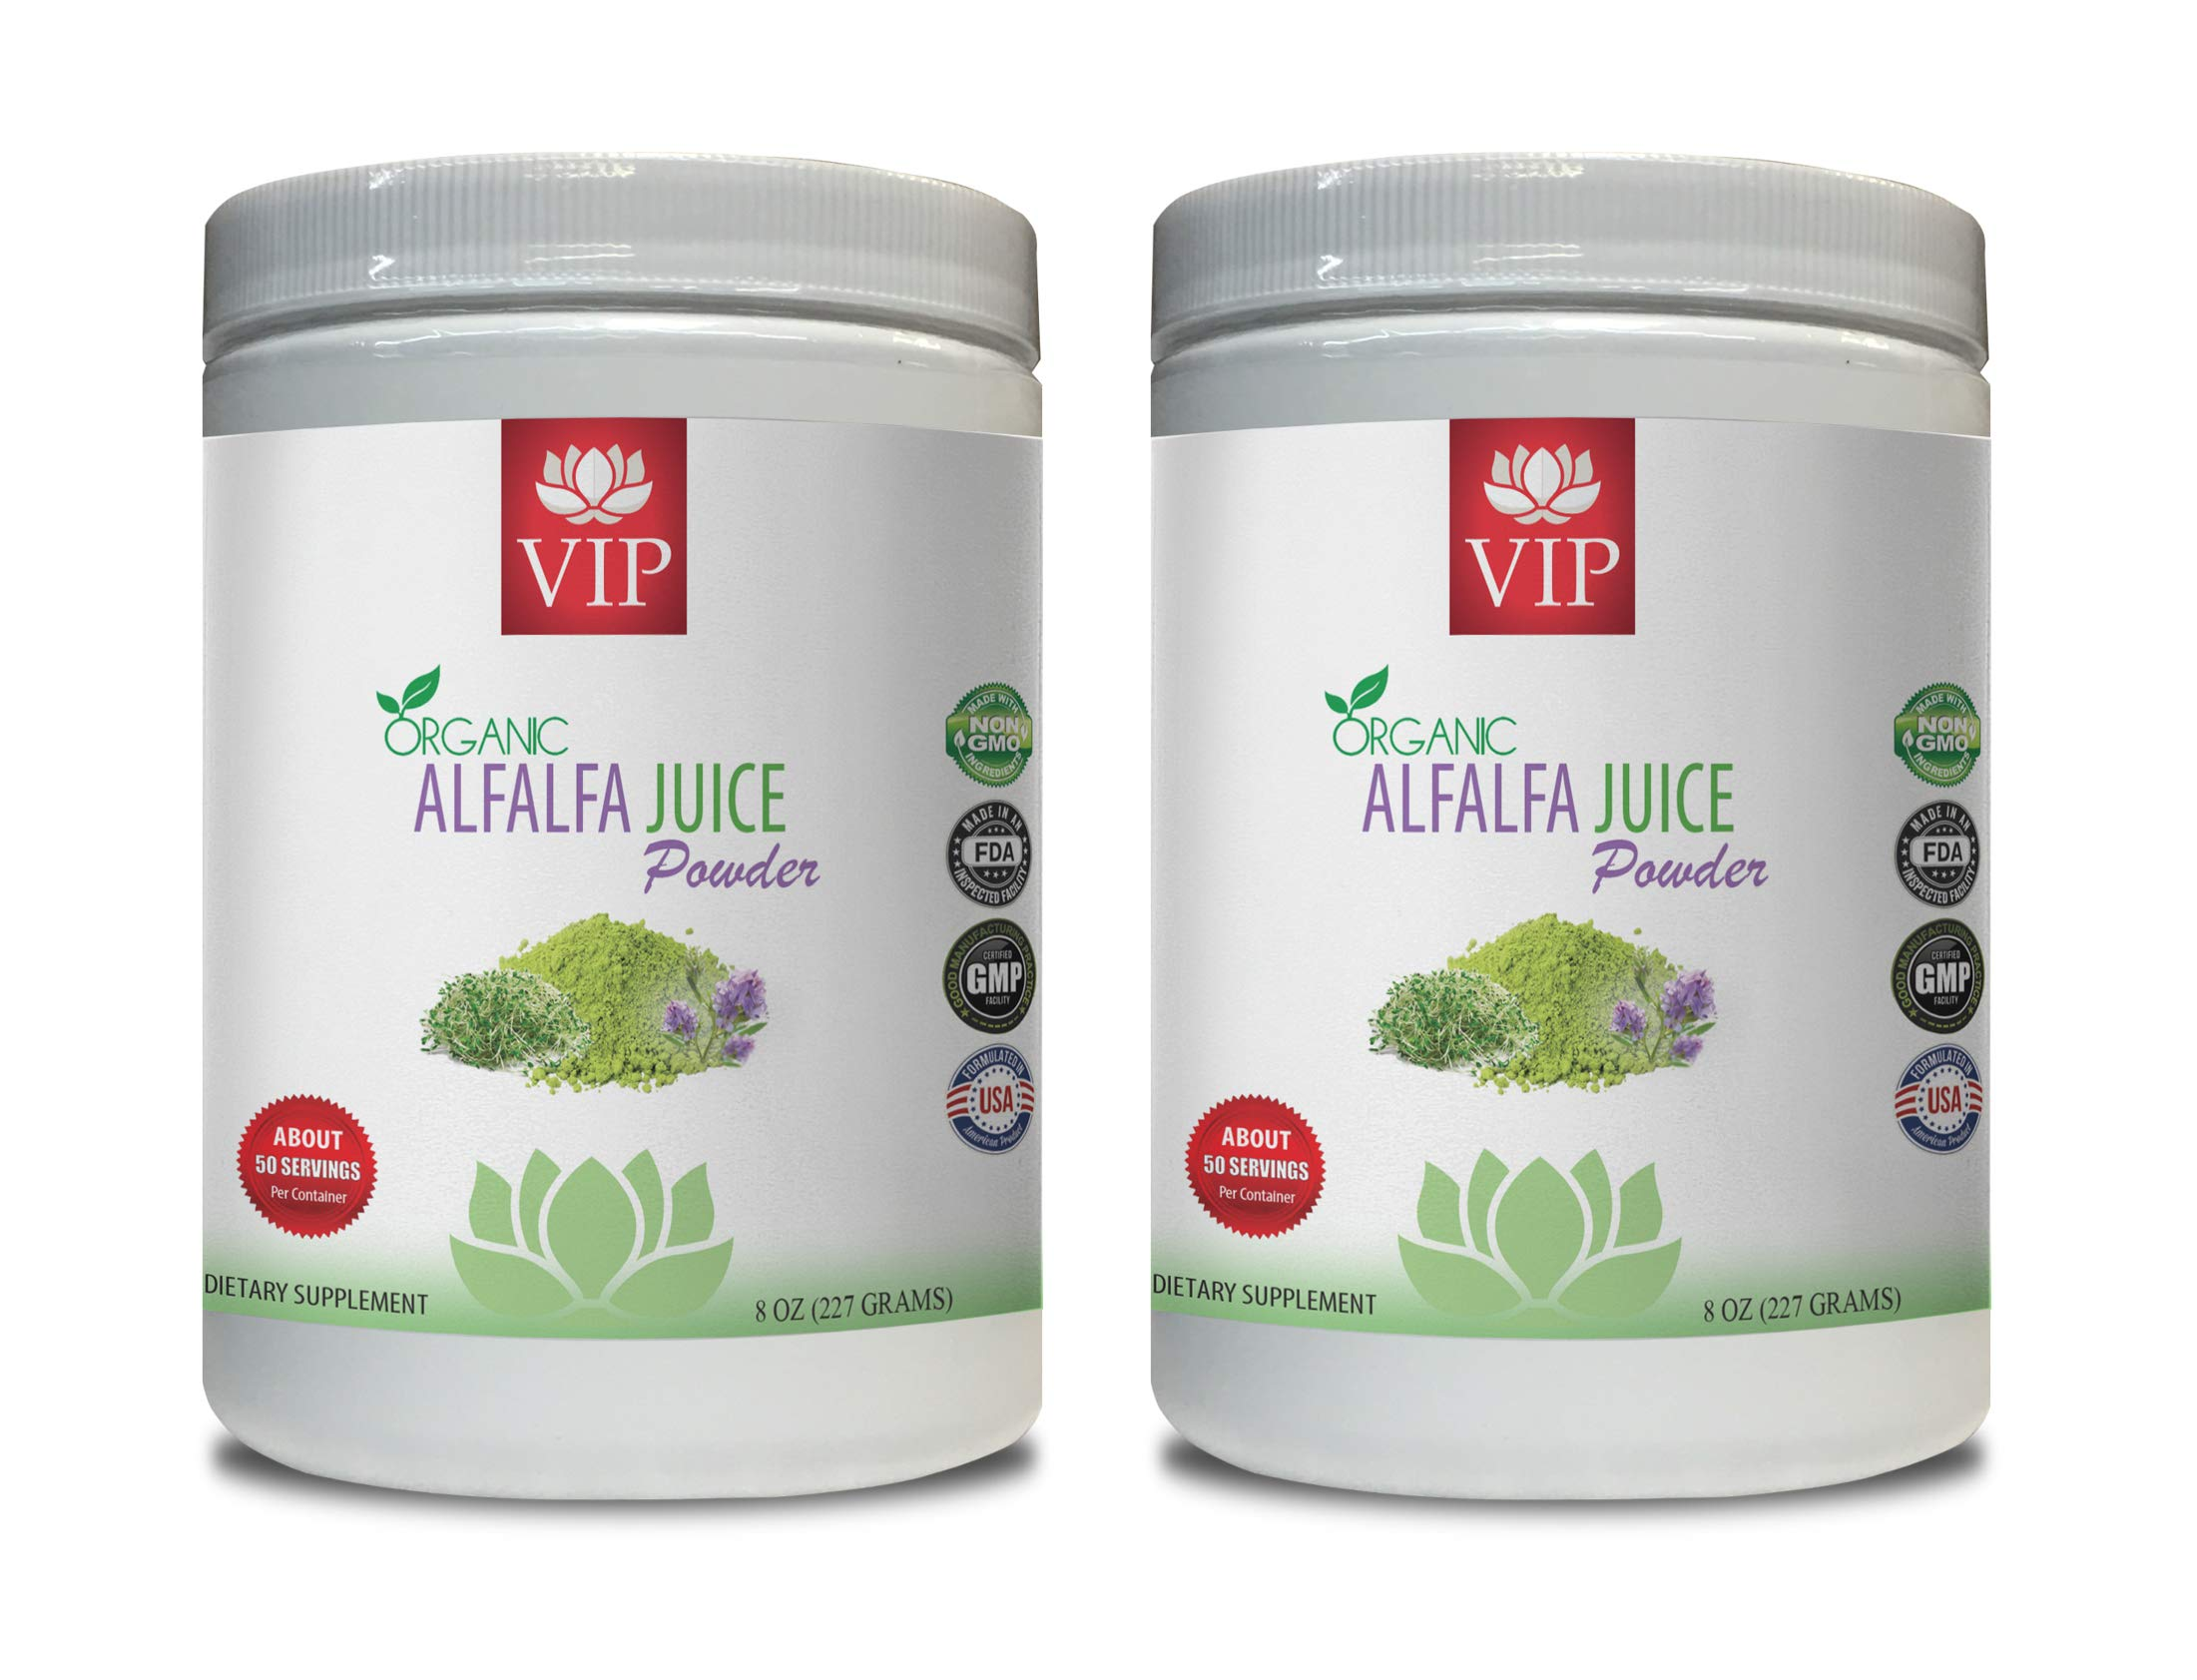 Cholesterol Supplement - Alfalfa Organic Juice Powder - Organic Alfalfa Supplement - 2 Cans 16 OZ (100 Servings)